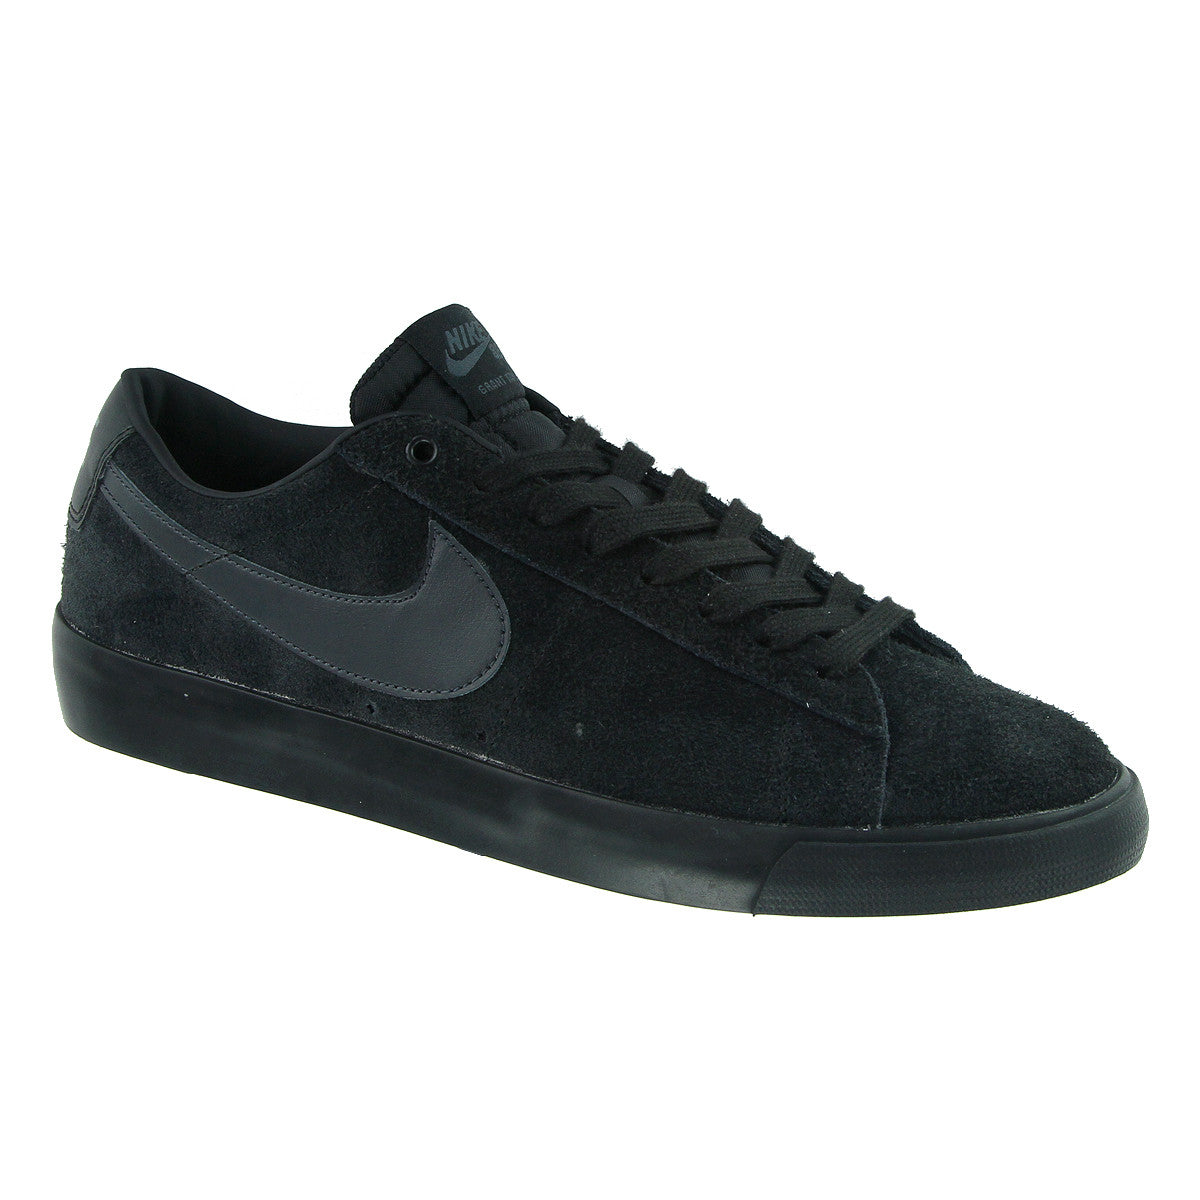 340f0966dae Nike SB Blazer Low GT - Black  Anthracite – Momentum Skate Shop